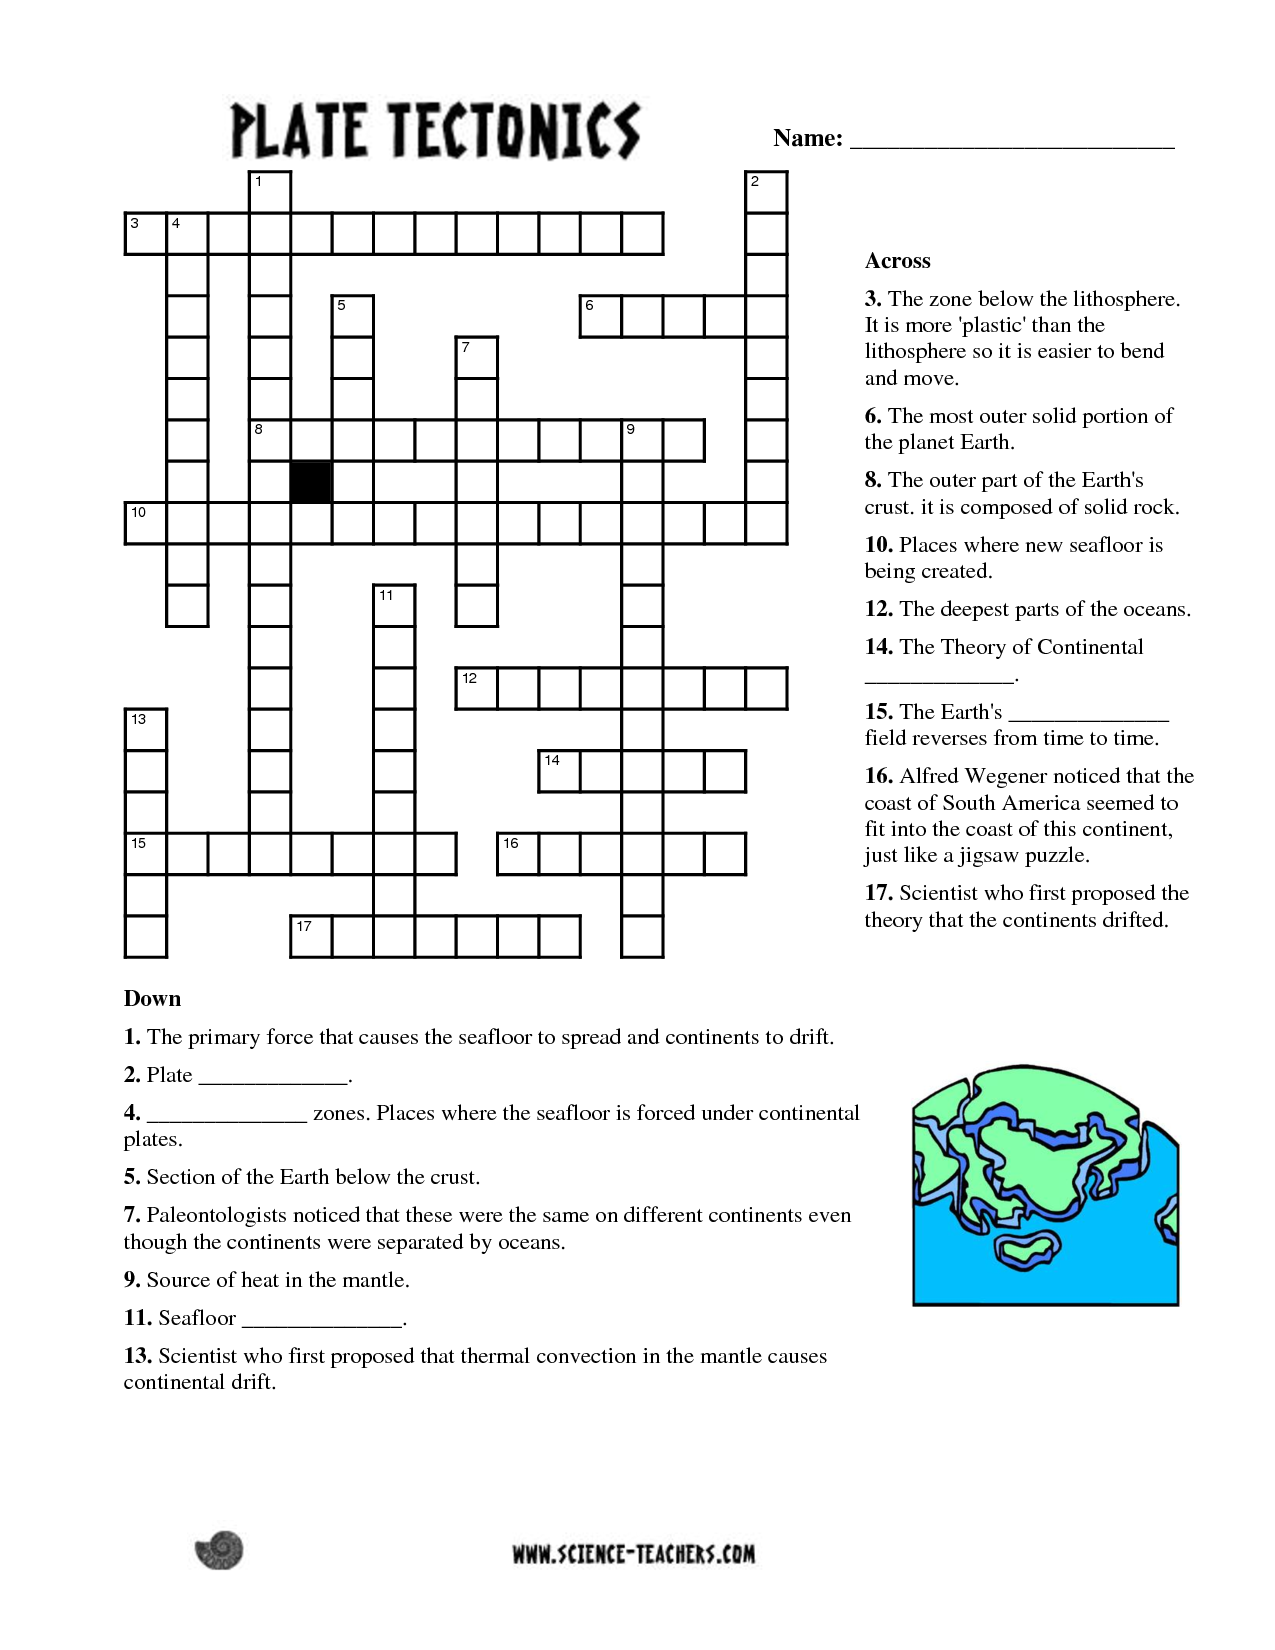 This is an image of Science Crossword Puzzle Printable pertaining to free blank crossword puzzle